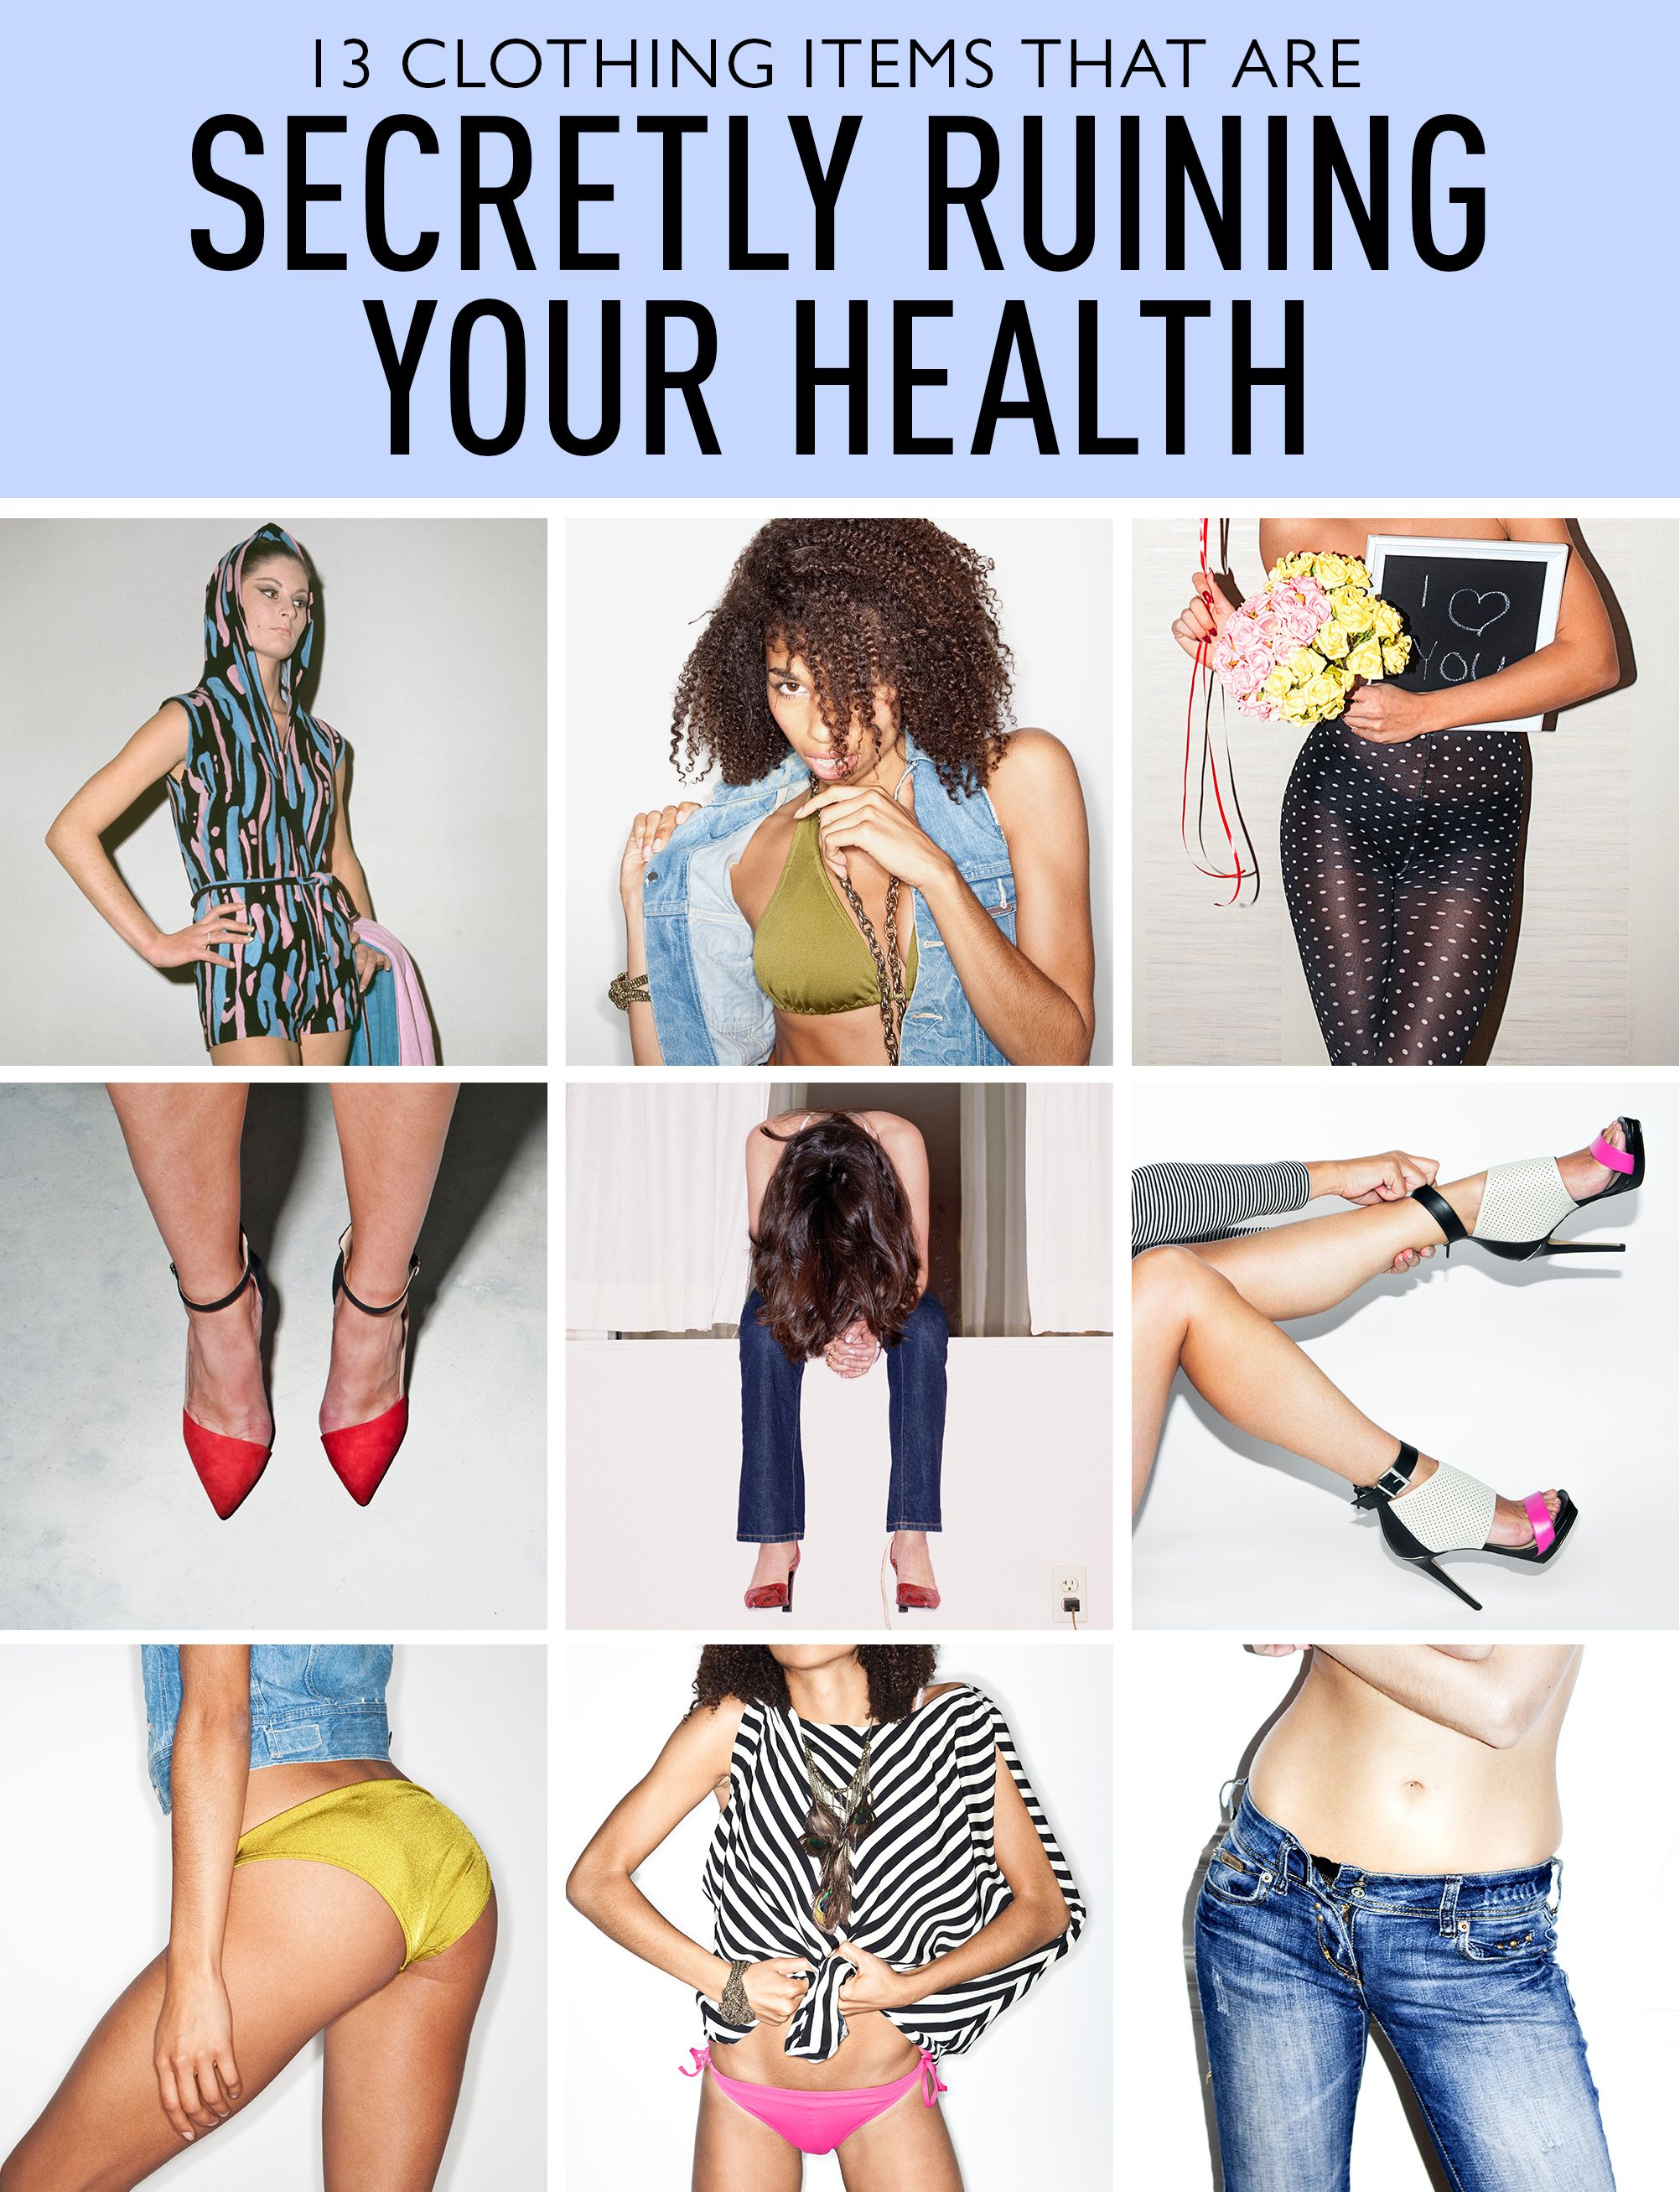 d40ced9a854c04 13 Clothing Items That Are Secretly Ruining Your Health